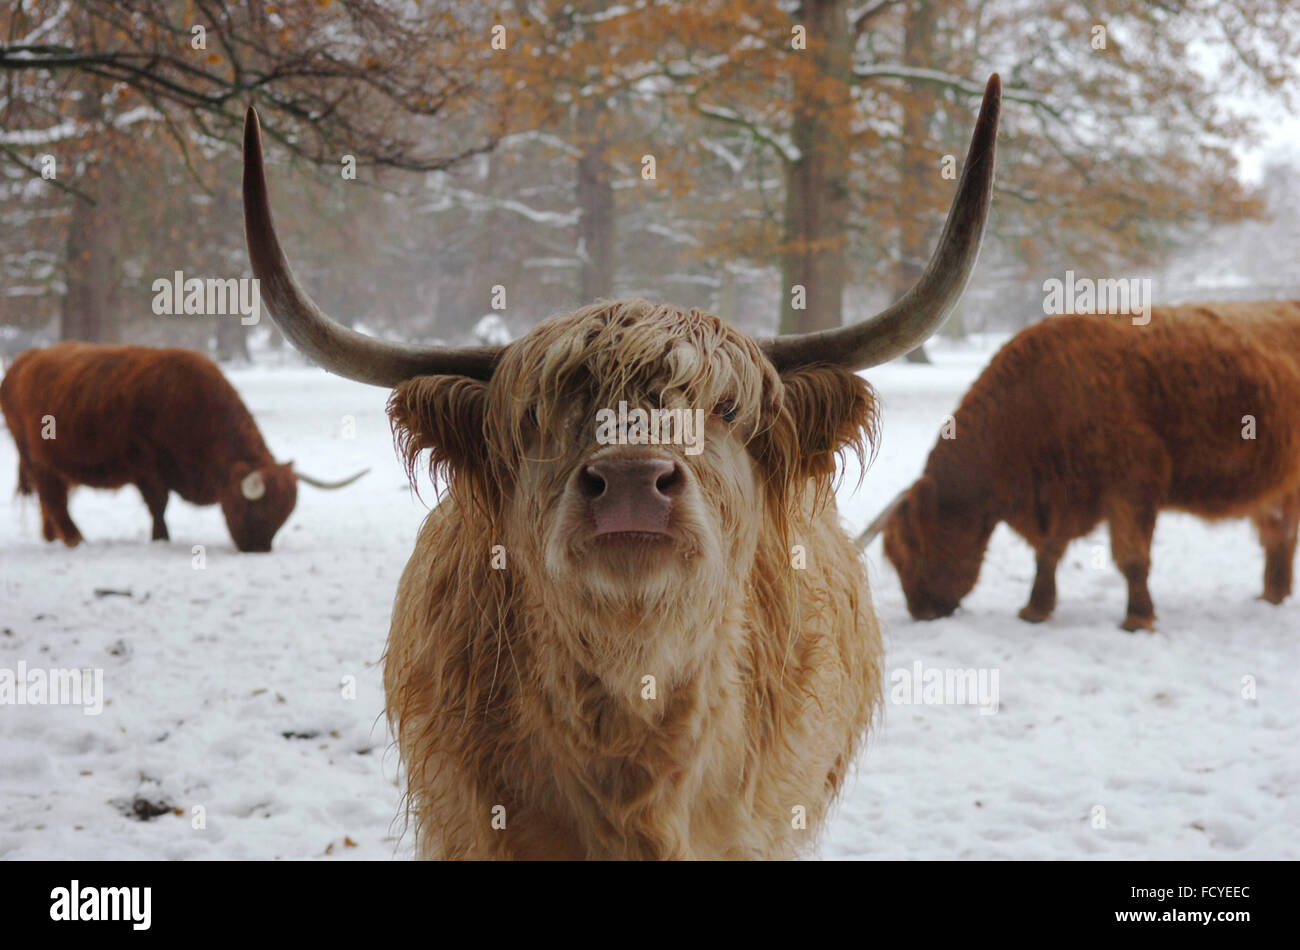 Highland Cow in Scotland - Stock Image